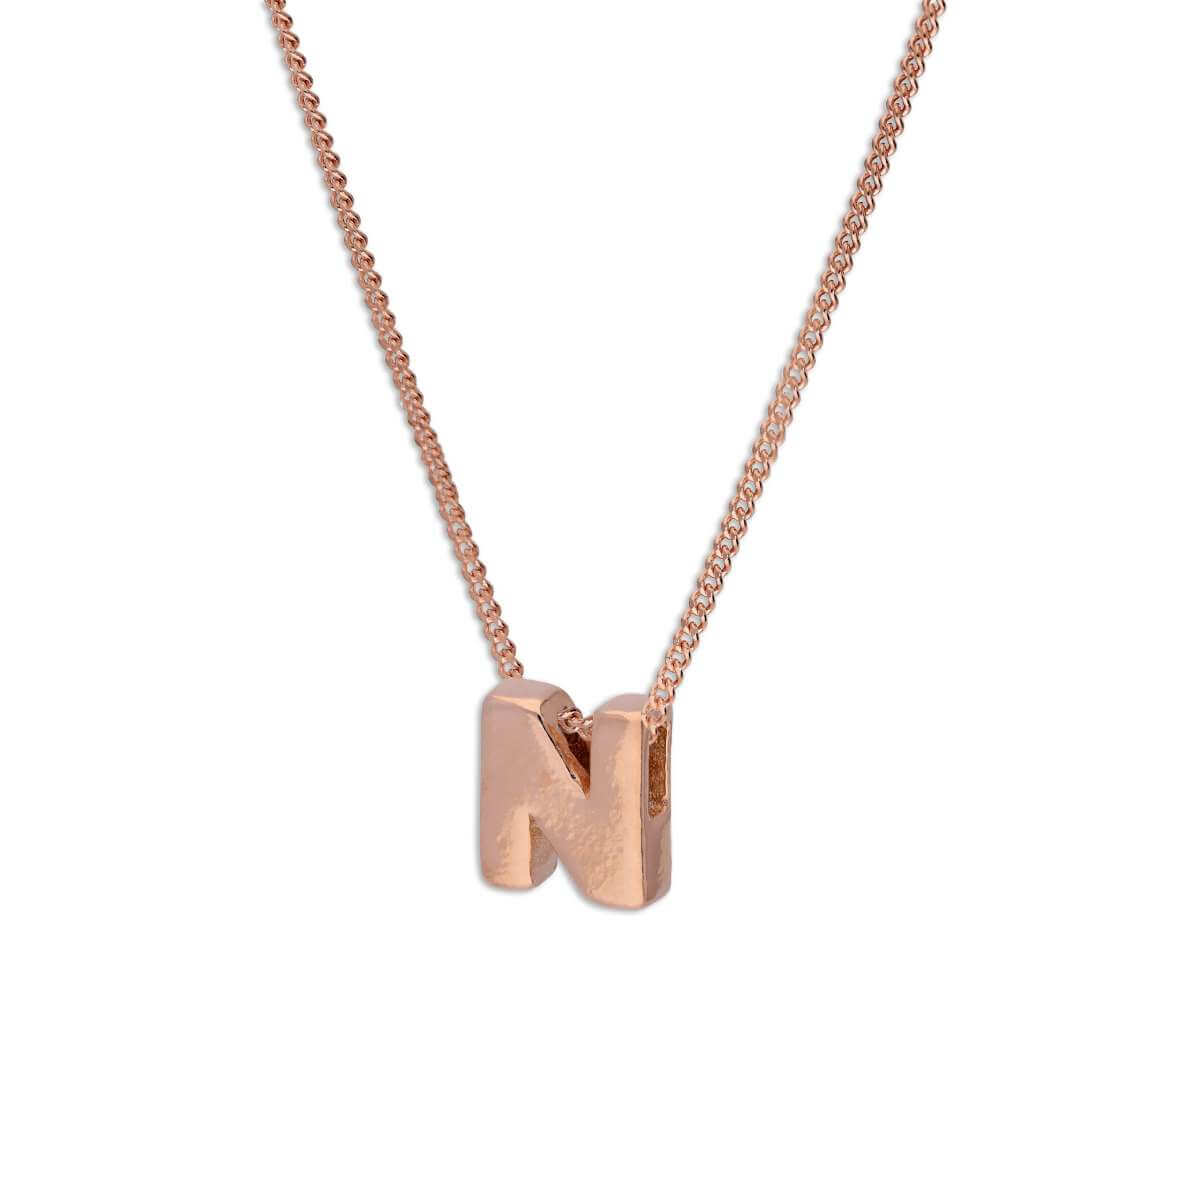 Rose Gold Plated Sterling Silver Letter N Pendant Necklace 14 - 32 Inches